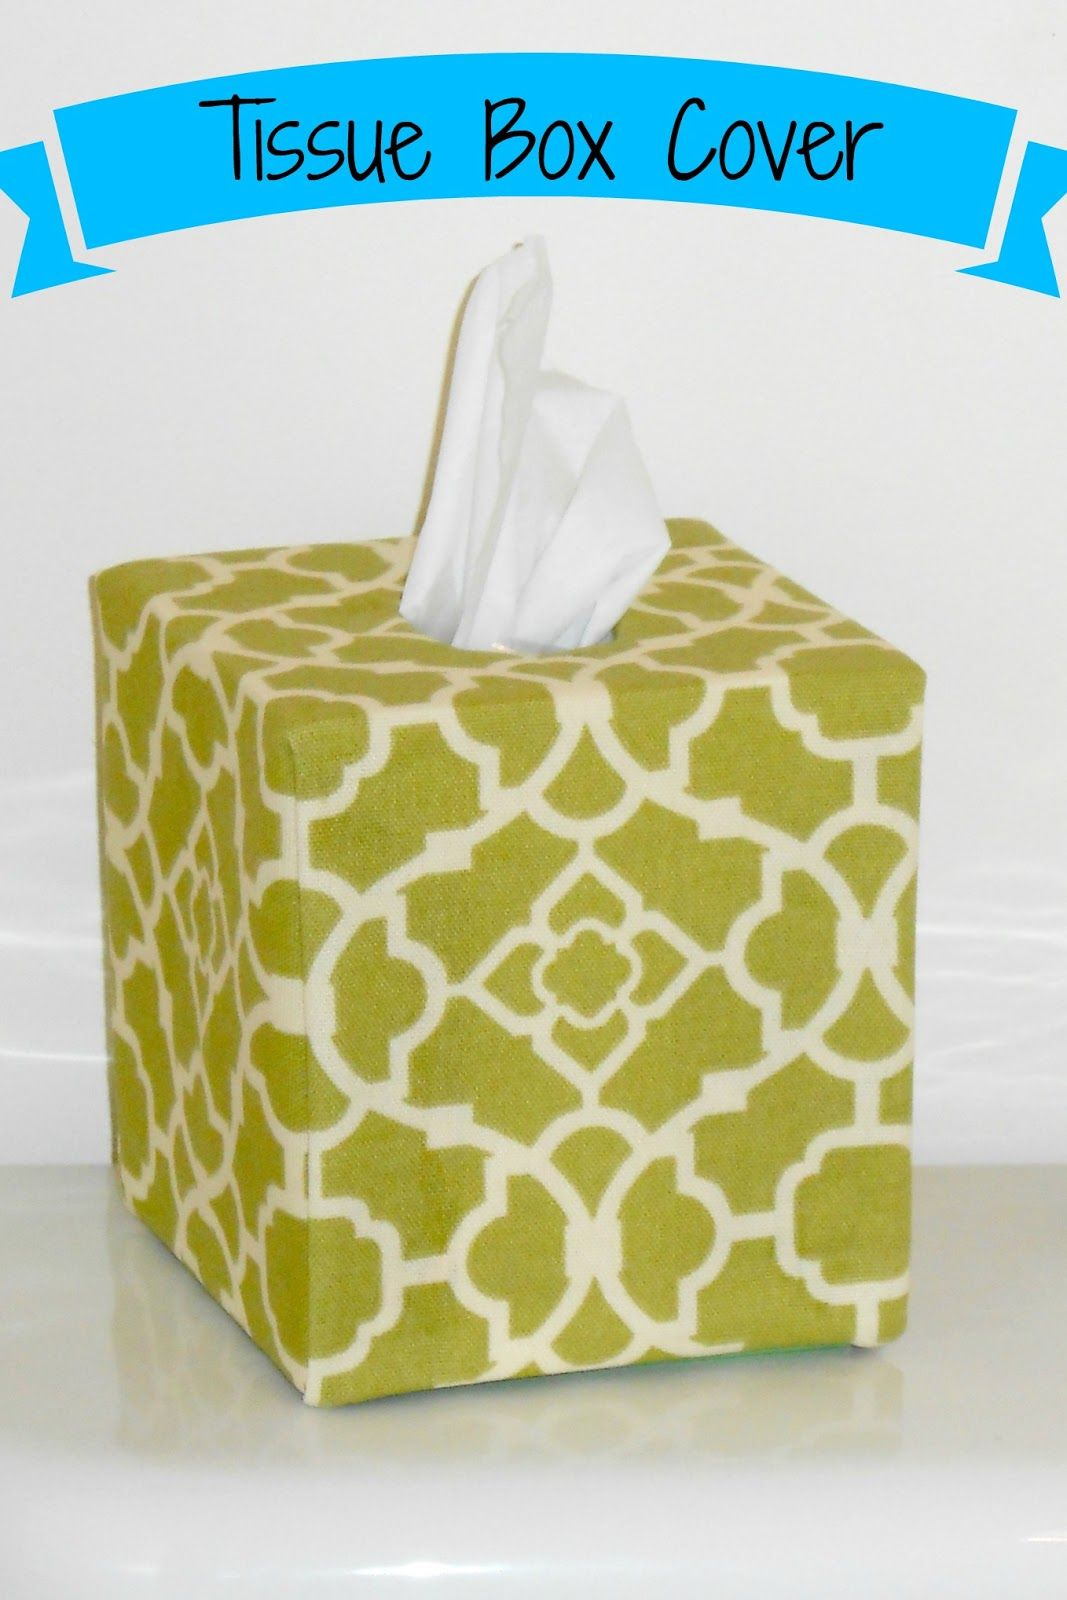 Fabric covered tissue box cover crafts fabric projects for Tissue box cover craft